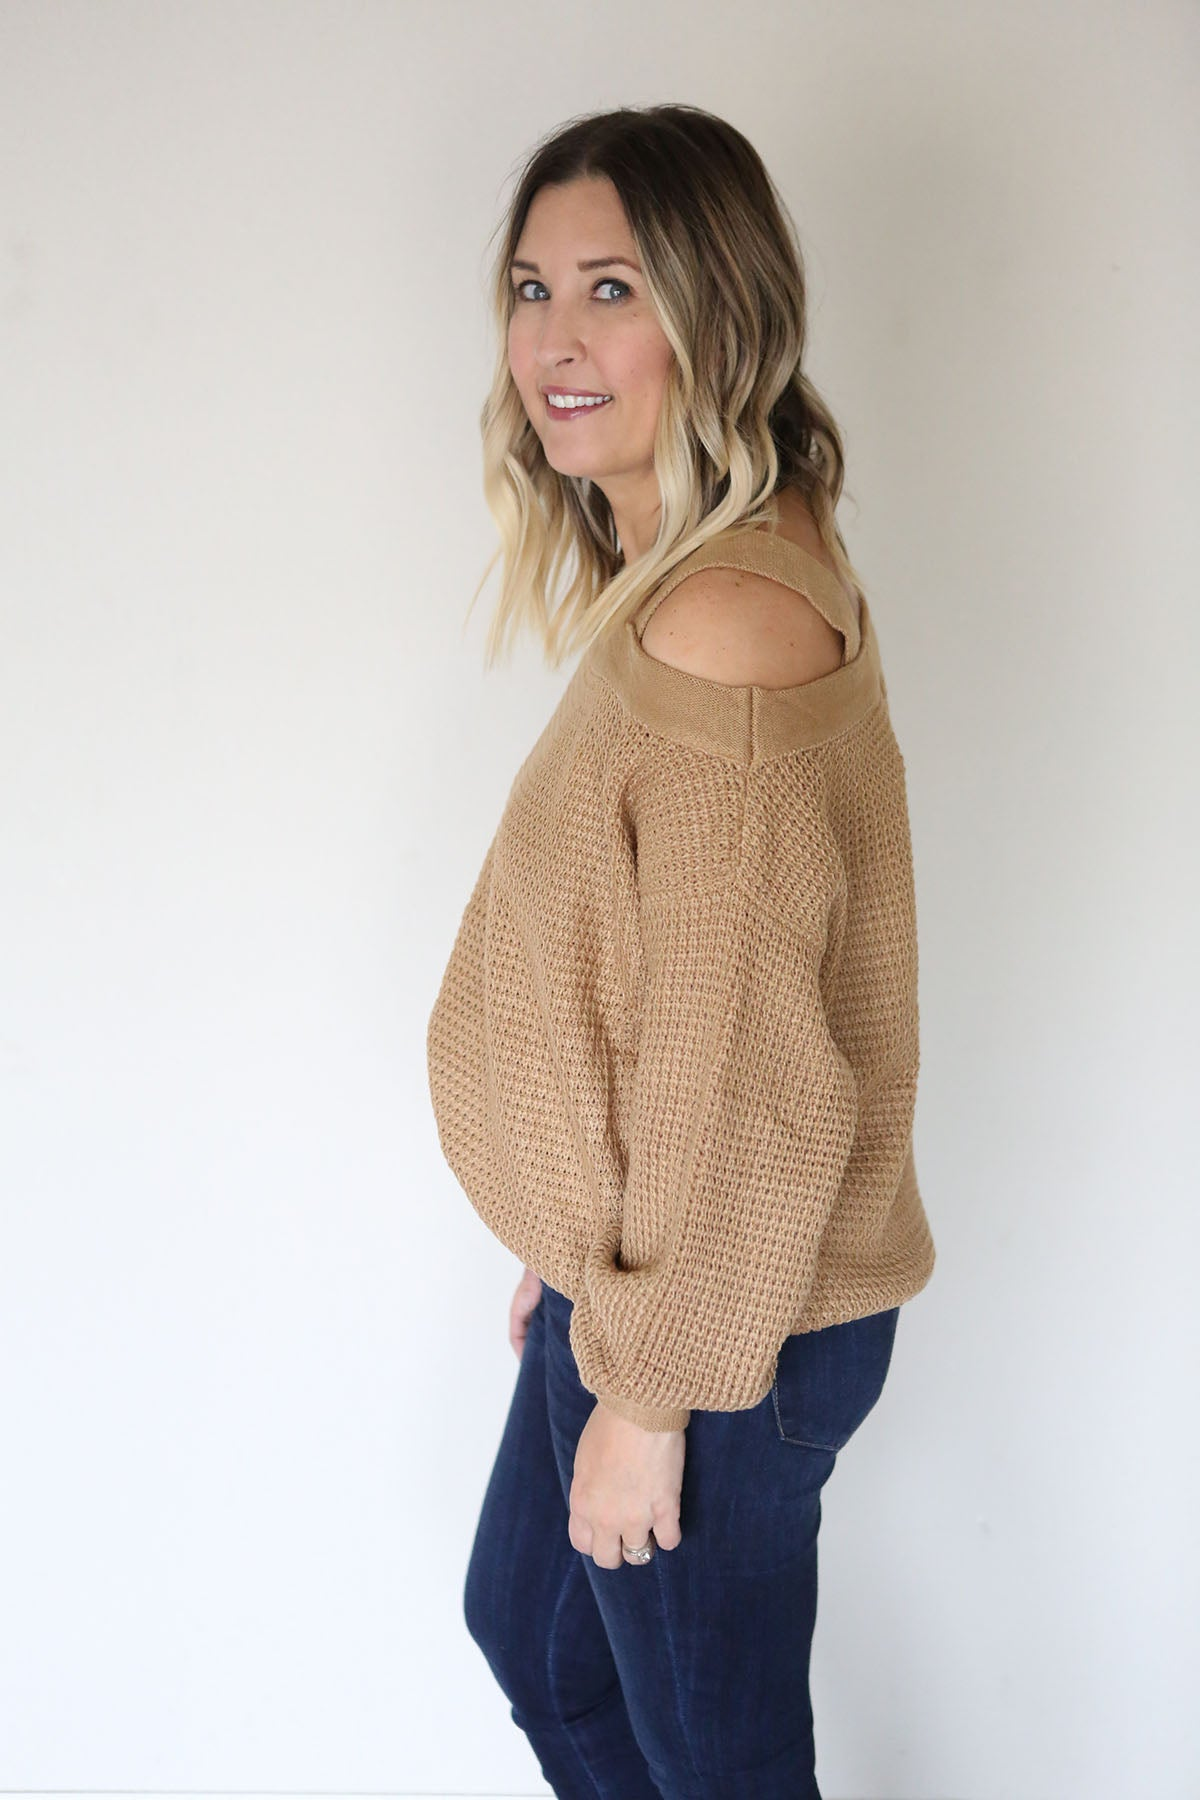 Santoro Sweater - FINAL SALE